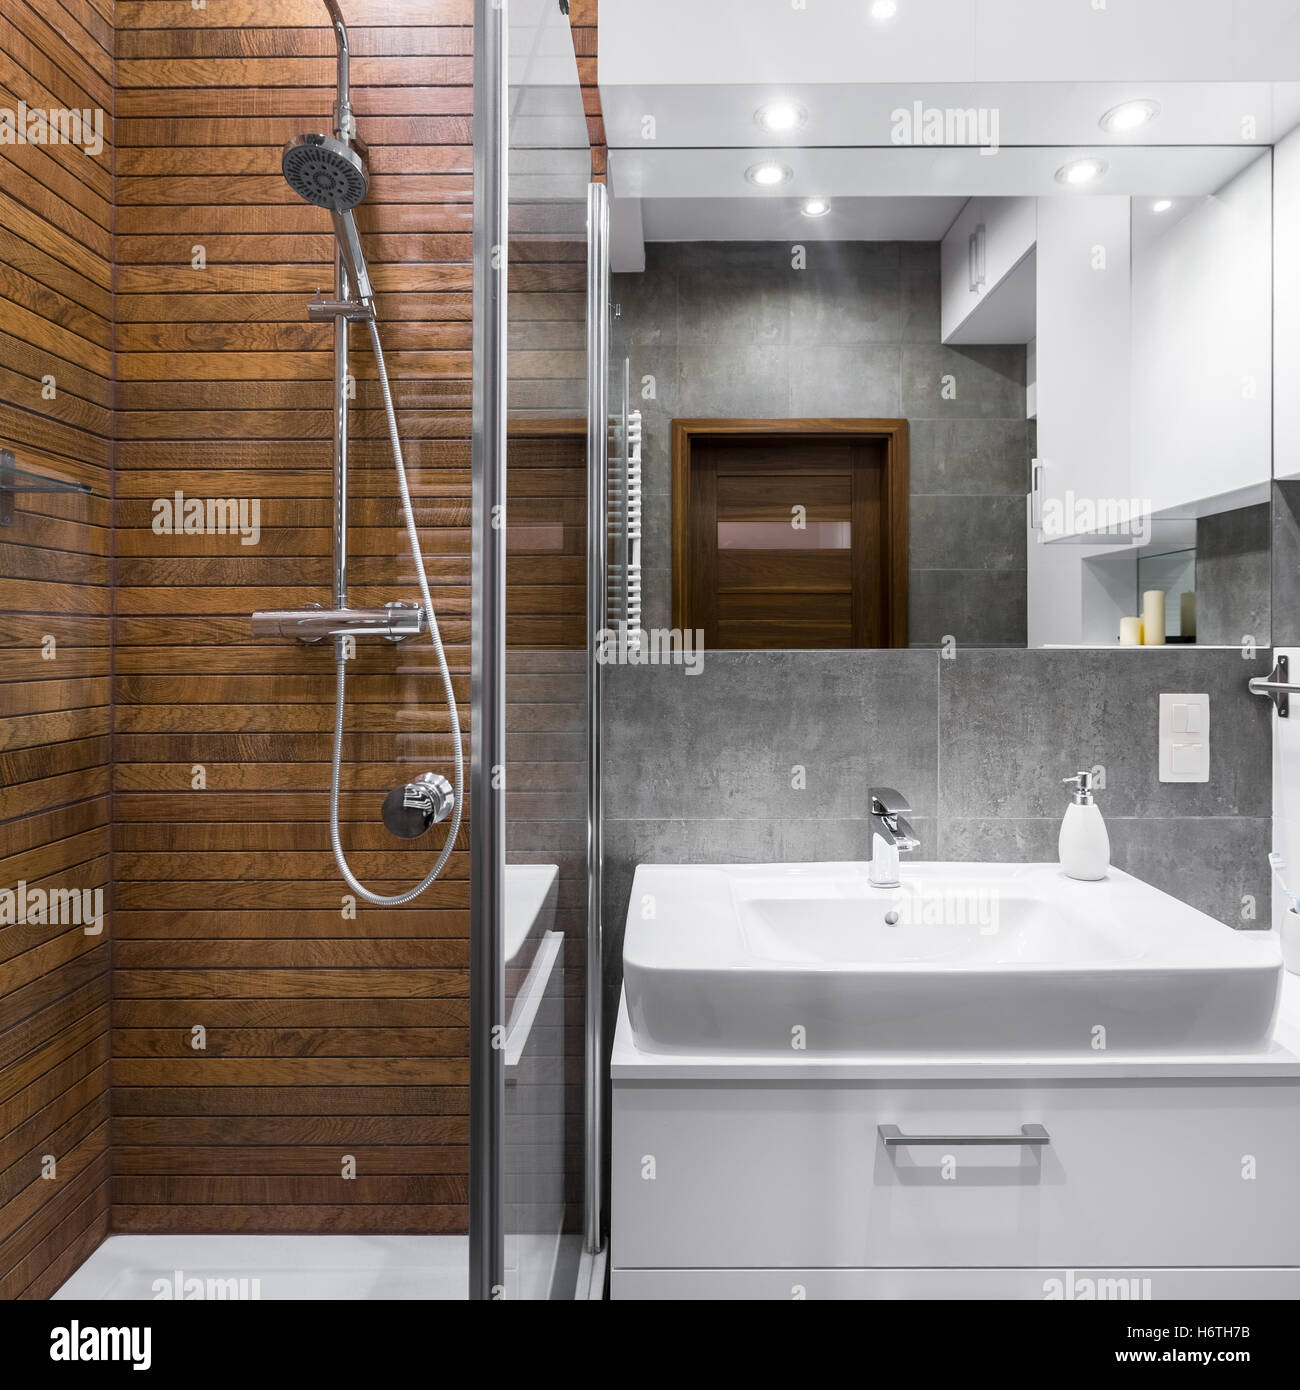 New Style Bathroom With Wood Effect Tiles, Shower, Mirror And Basin